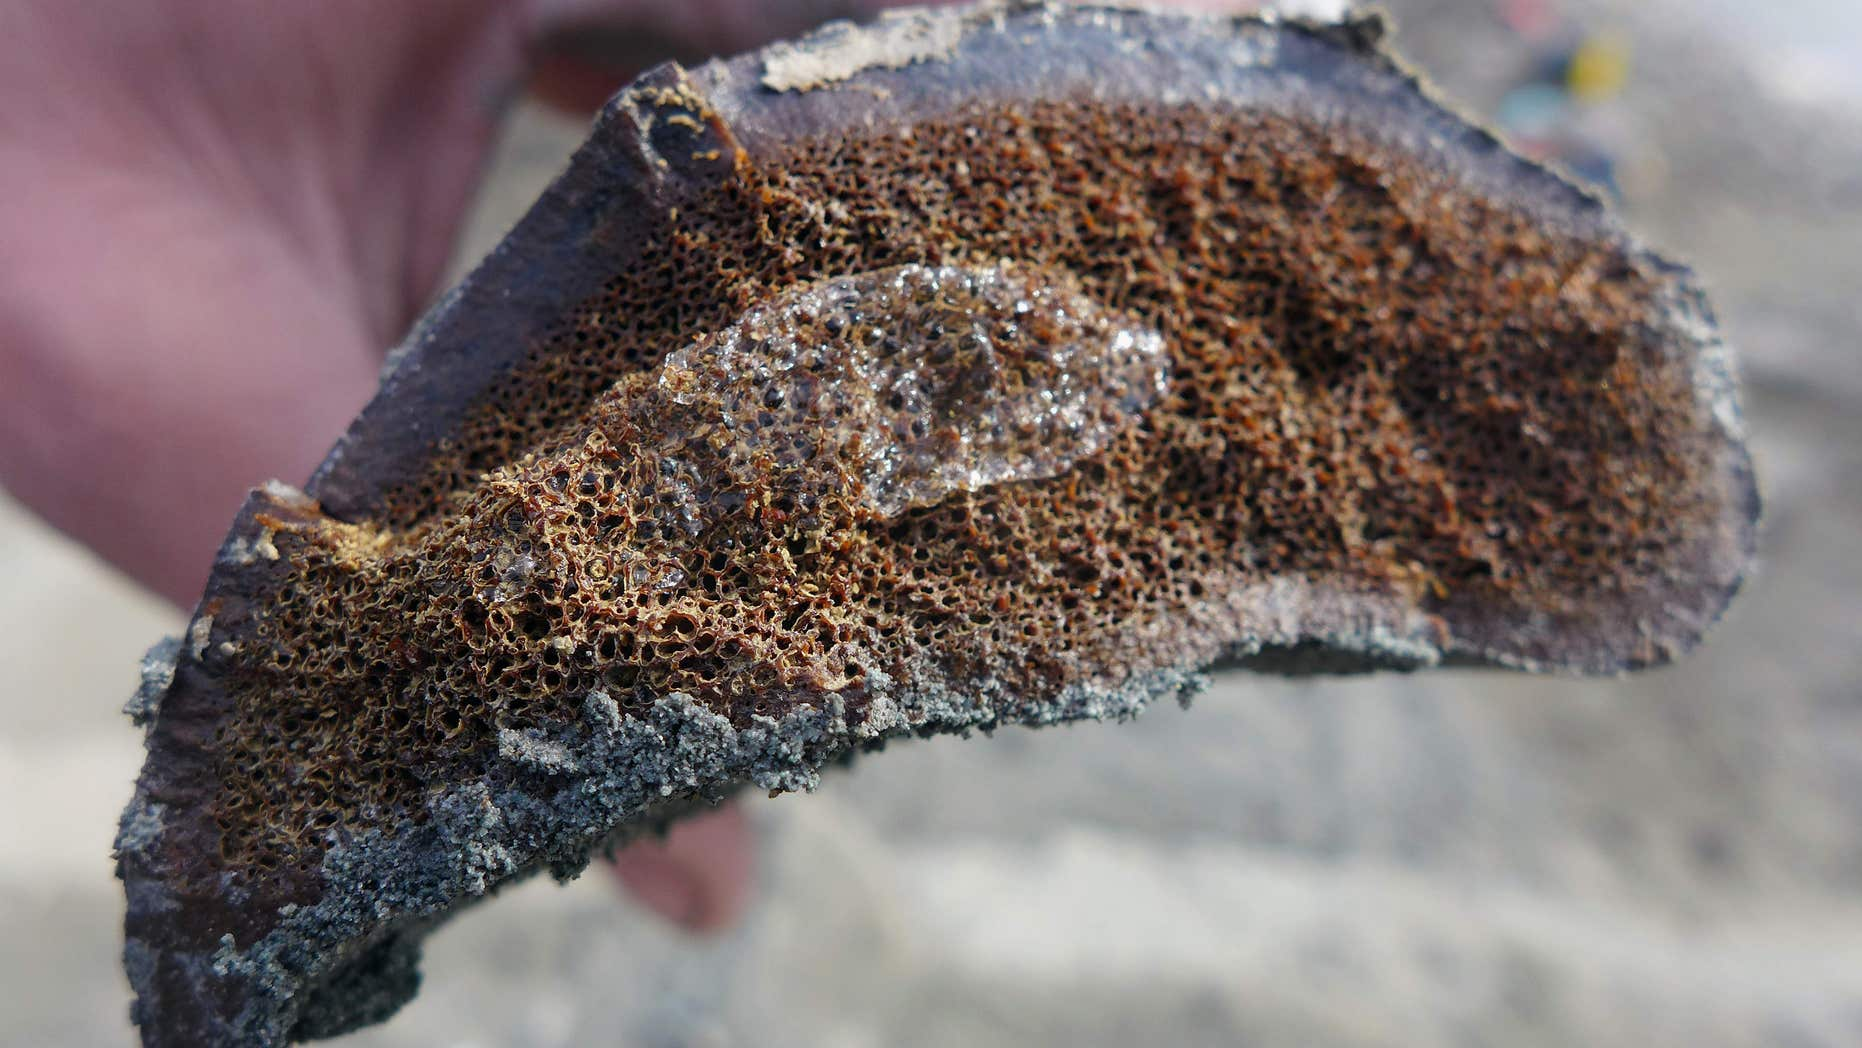 In this 2014 photo released by the University of Alaska Museum of the North, a sample of frozen bone is seen after researchers excavated it from the Liscomb Bed in the Prince Creek Formation near Nuiqsut, Alaska.